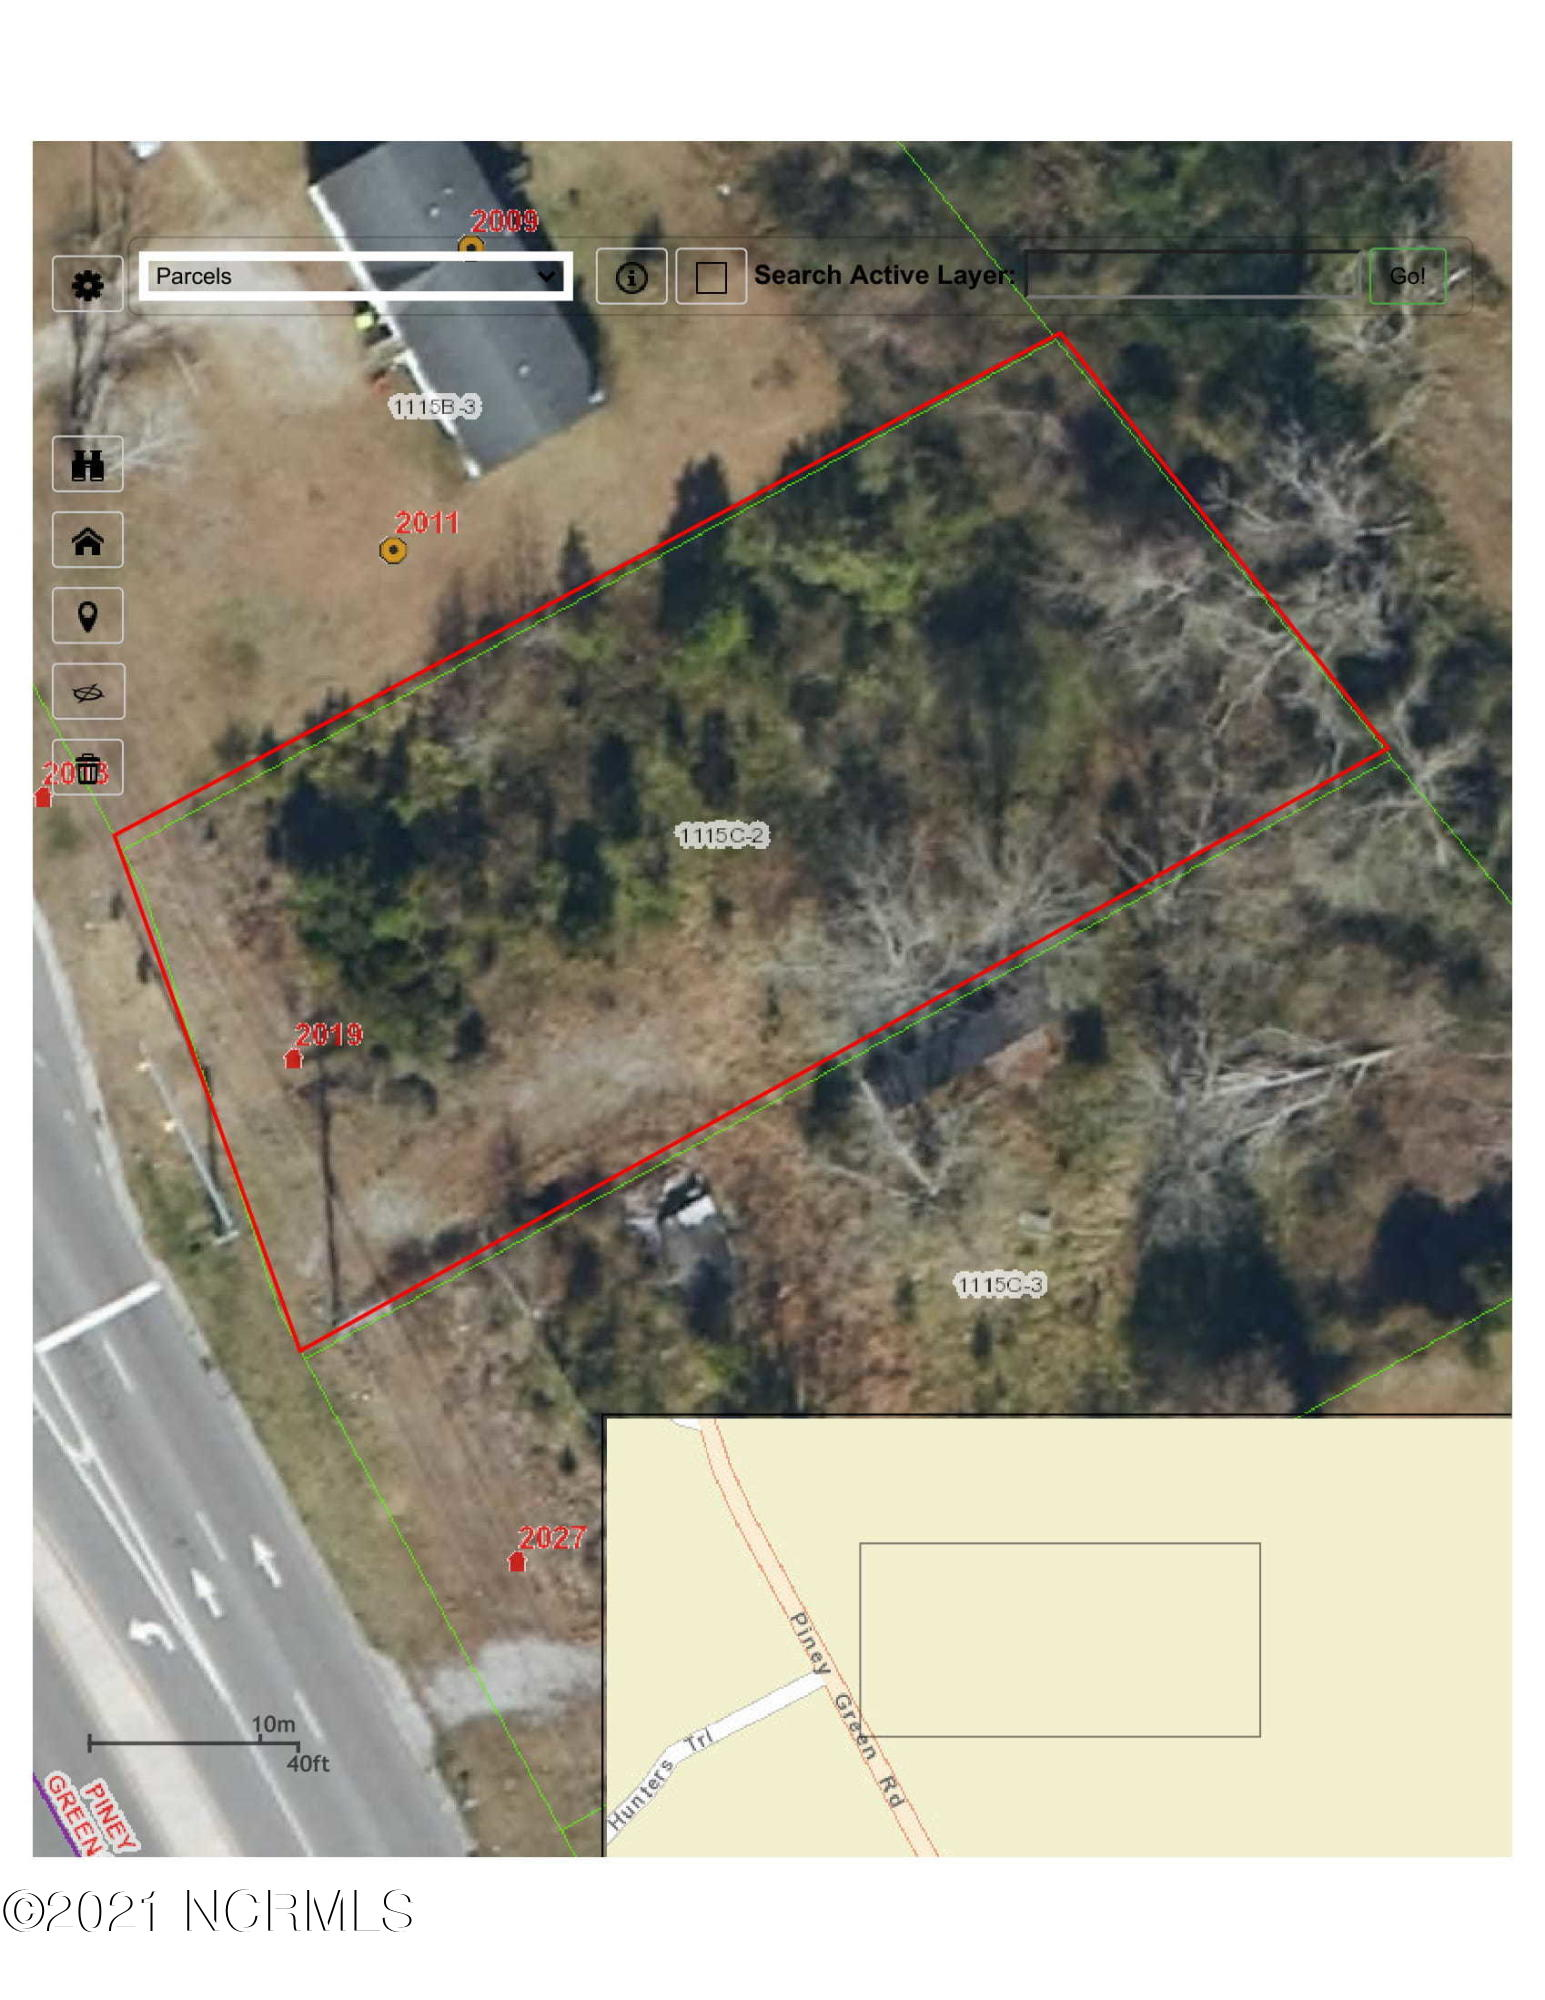 Investment Opportunity! Don't miss out on this 1/2 acre lot that the sellers want to sell both lots together that would be over an acre total with 203' of road frontage on a busy highway  There is already a red light in front of the property.  You have Water and Power access on the property. Call me with any questions you have.